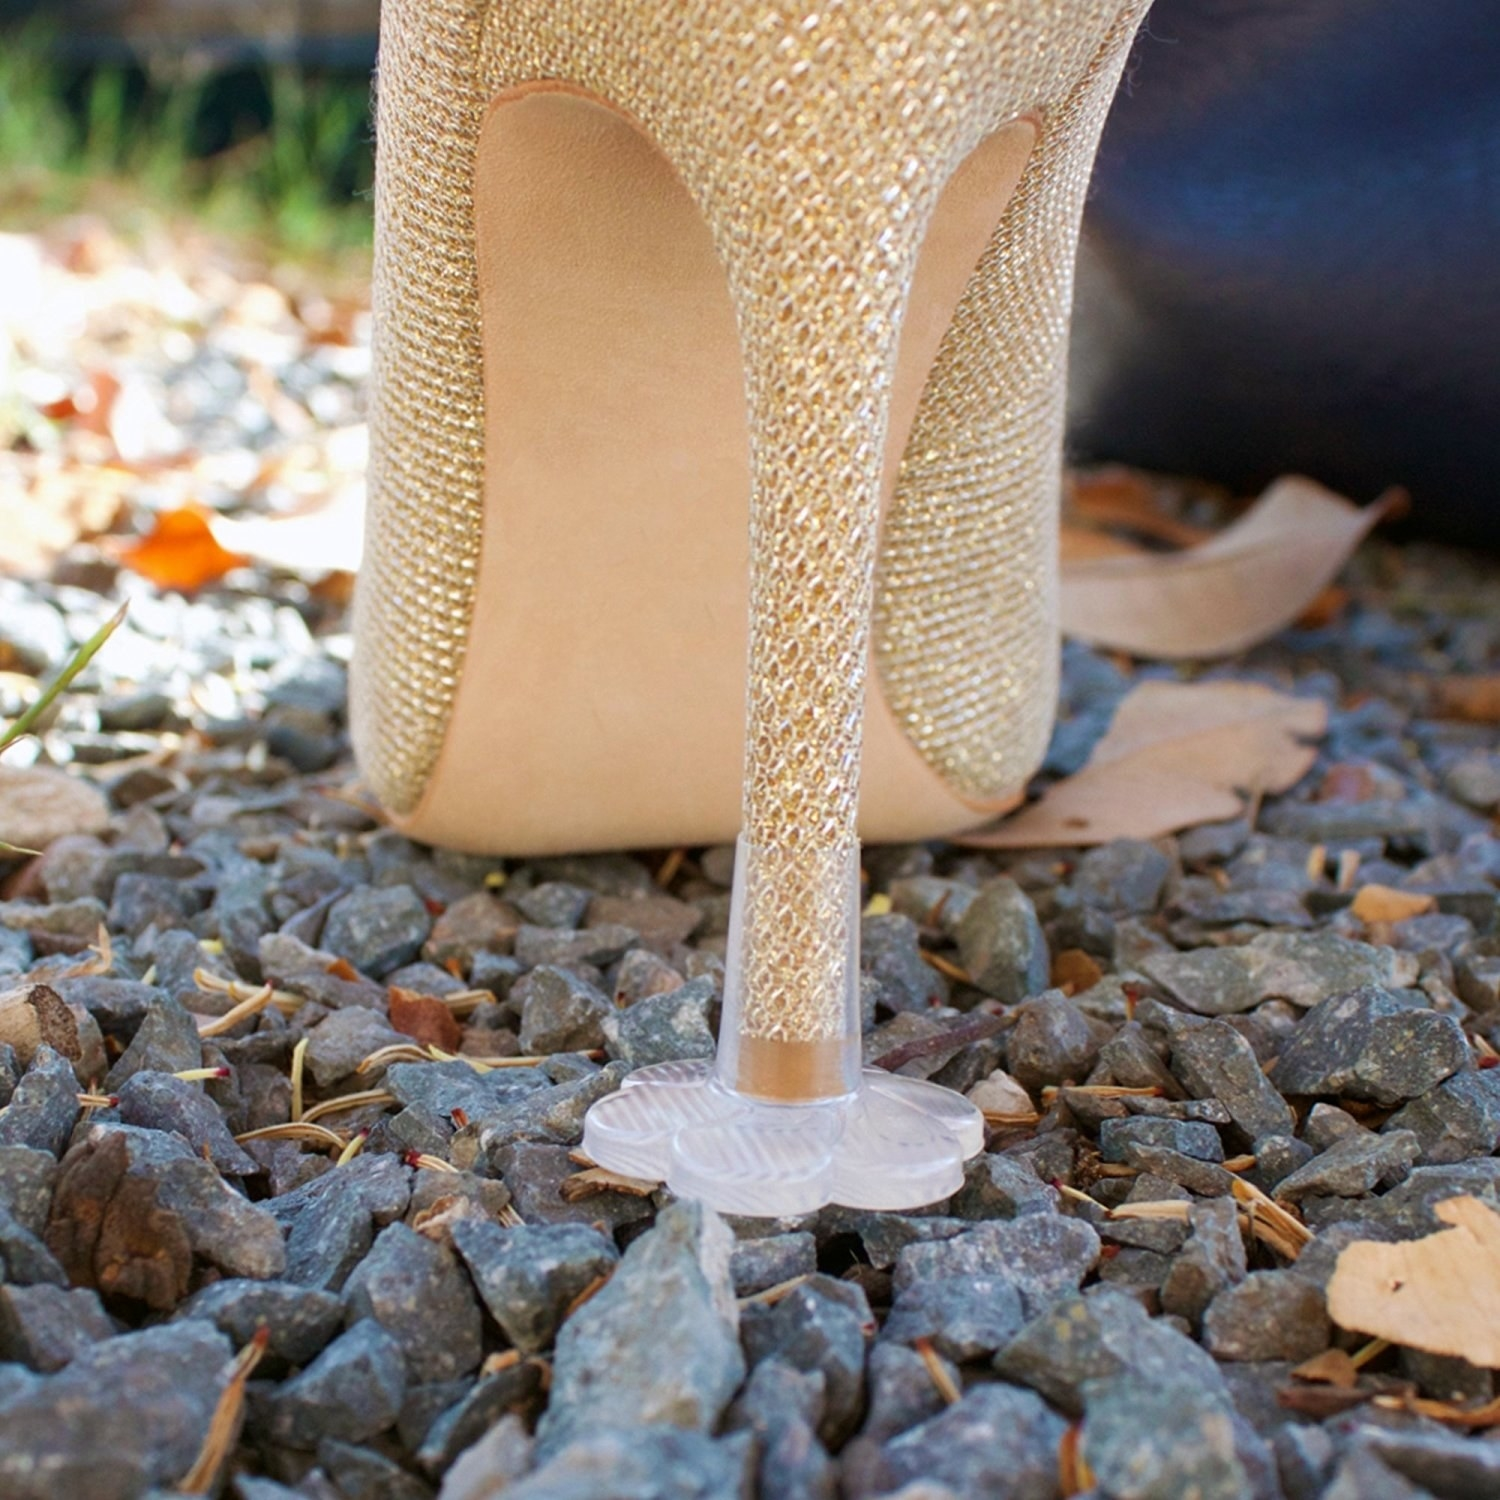 A shoe on gravel with a stopper over the tip of the thin heel. The stopper is transparent and has a flare, flower-shaped base